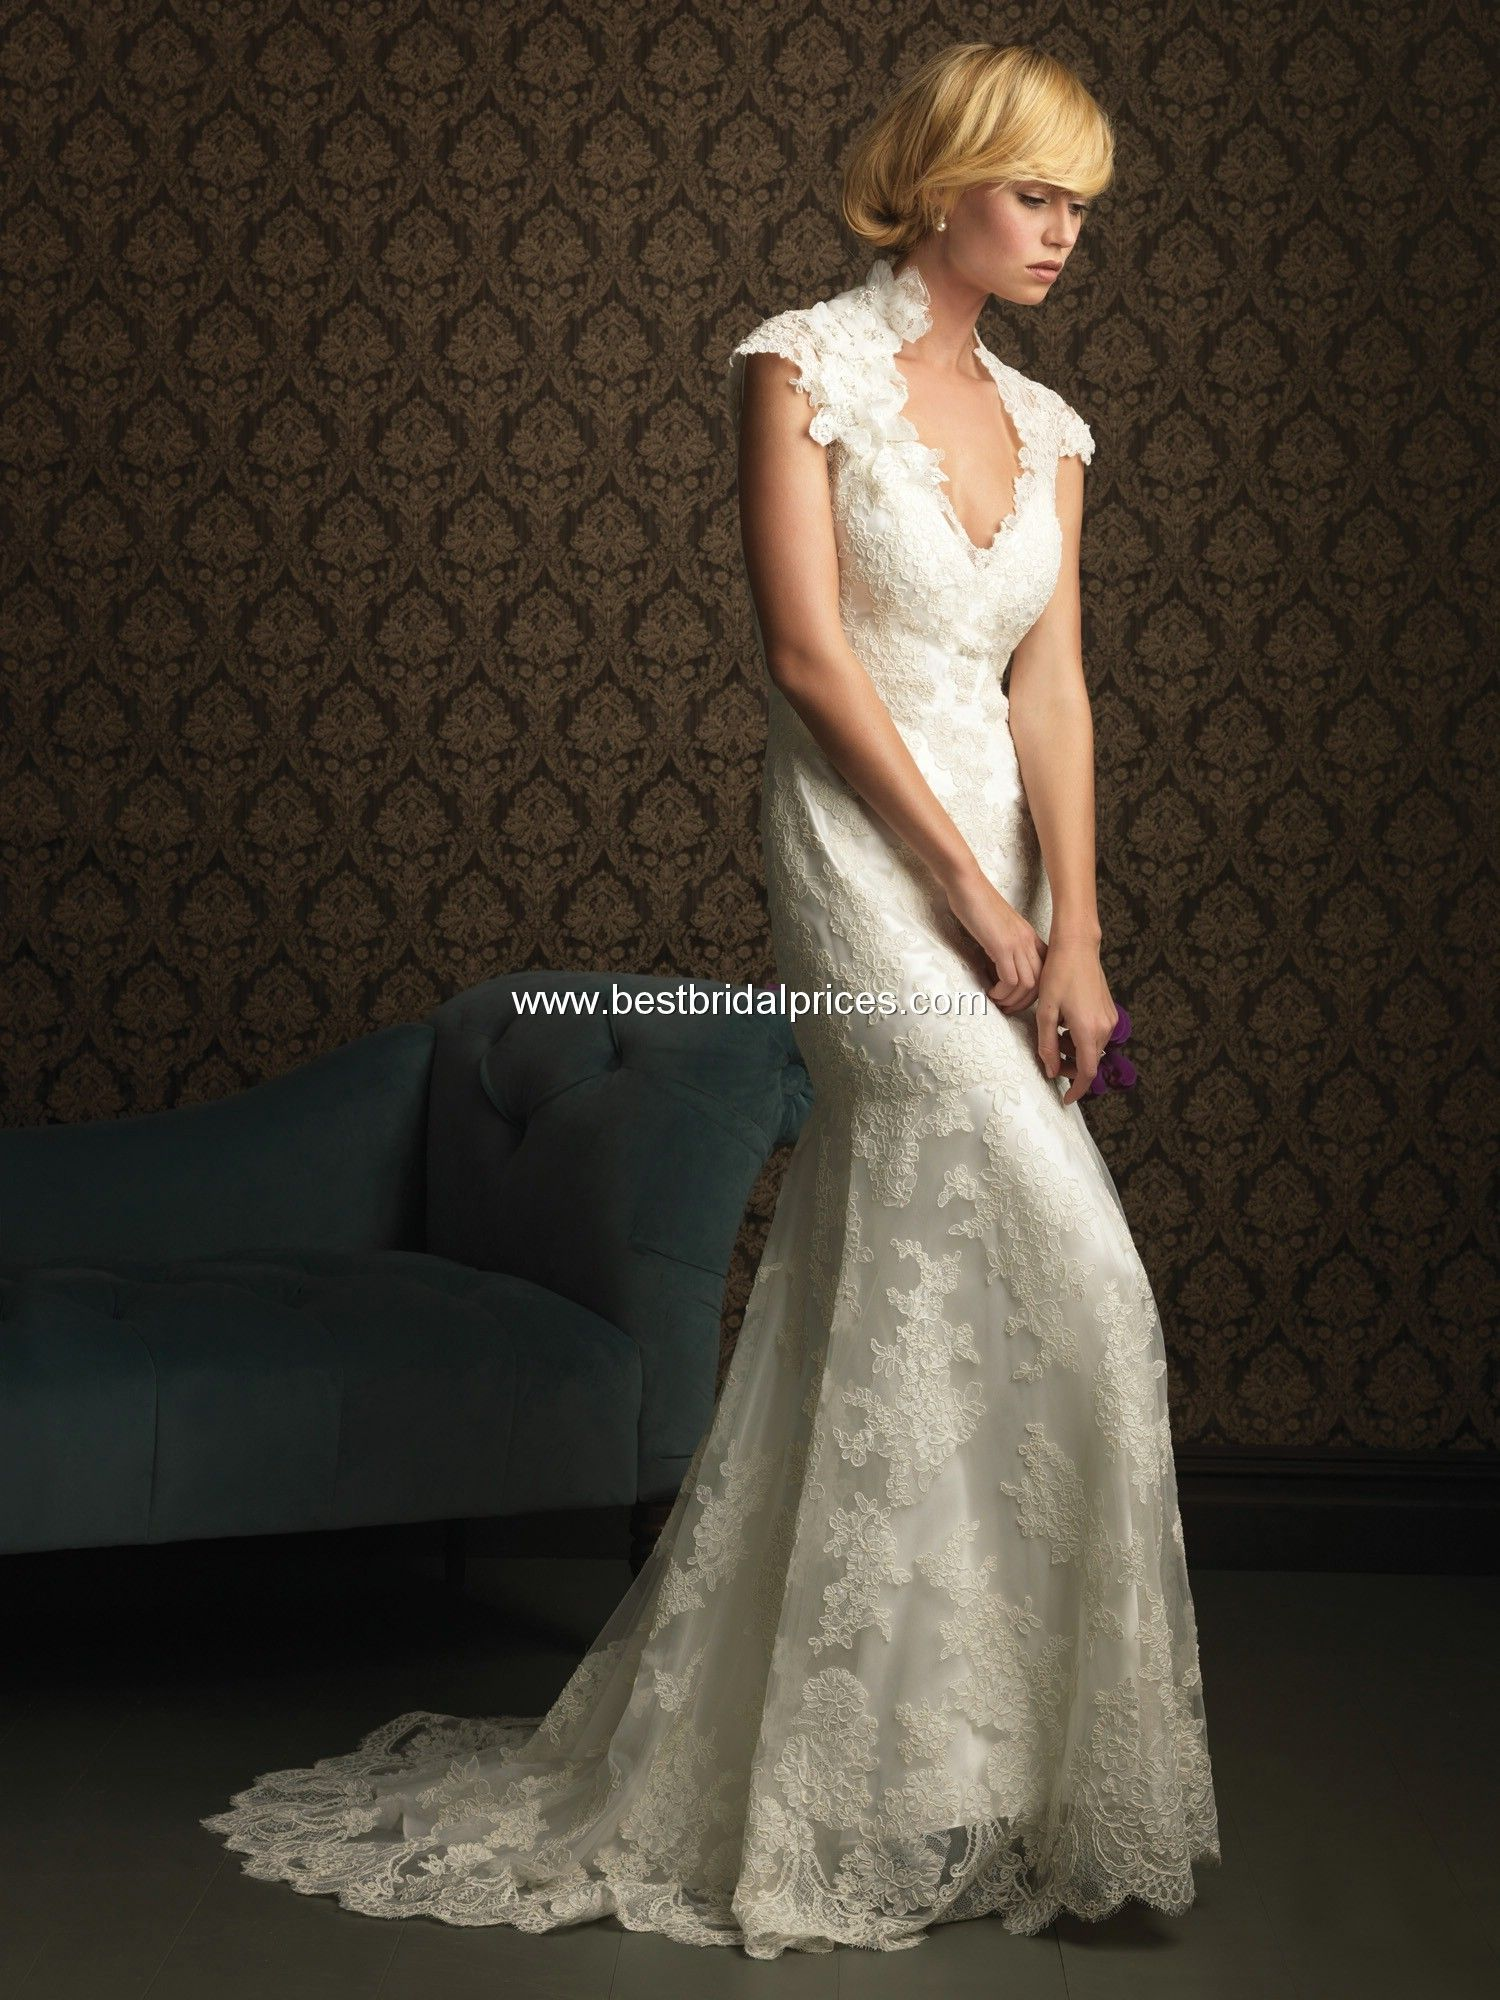 Short lace wedding dress with train  Allure Wedding Dresses  Style    Wedding Dresses